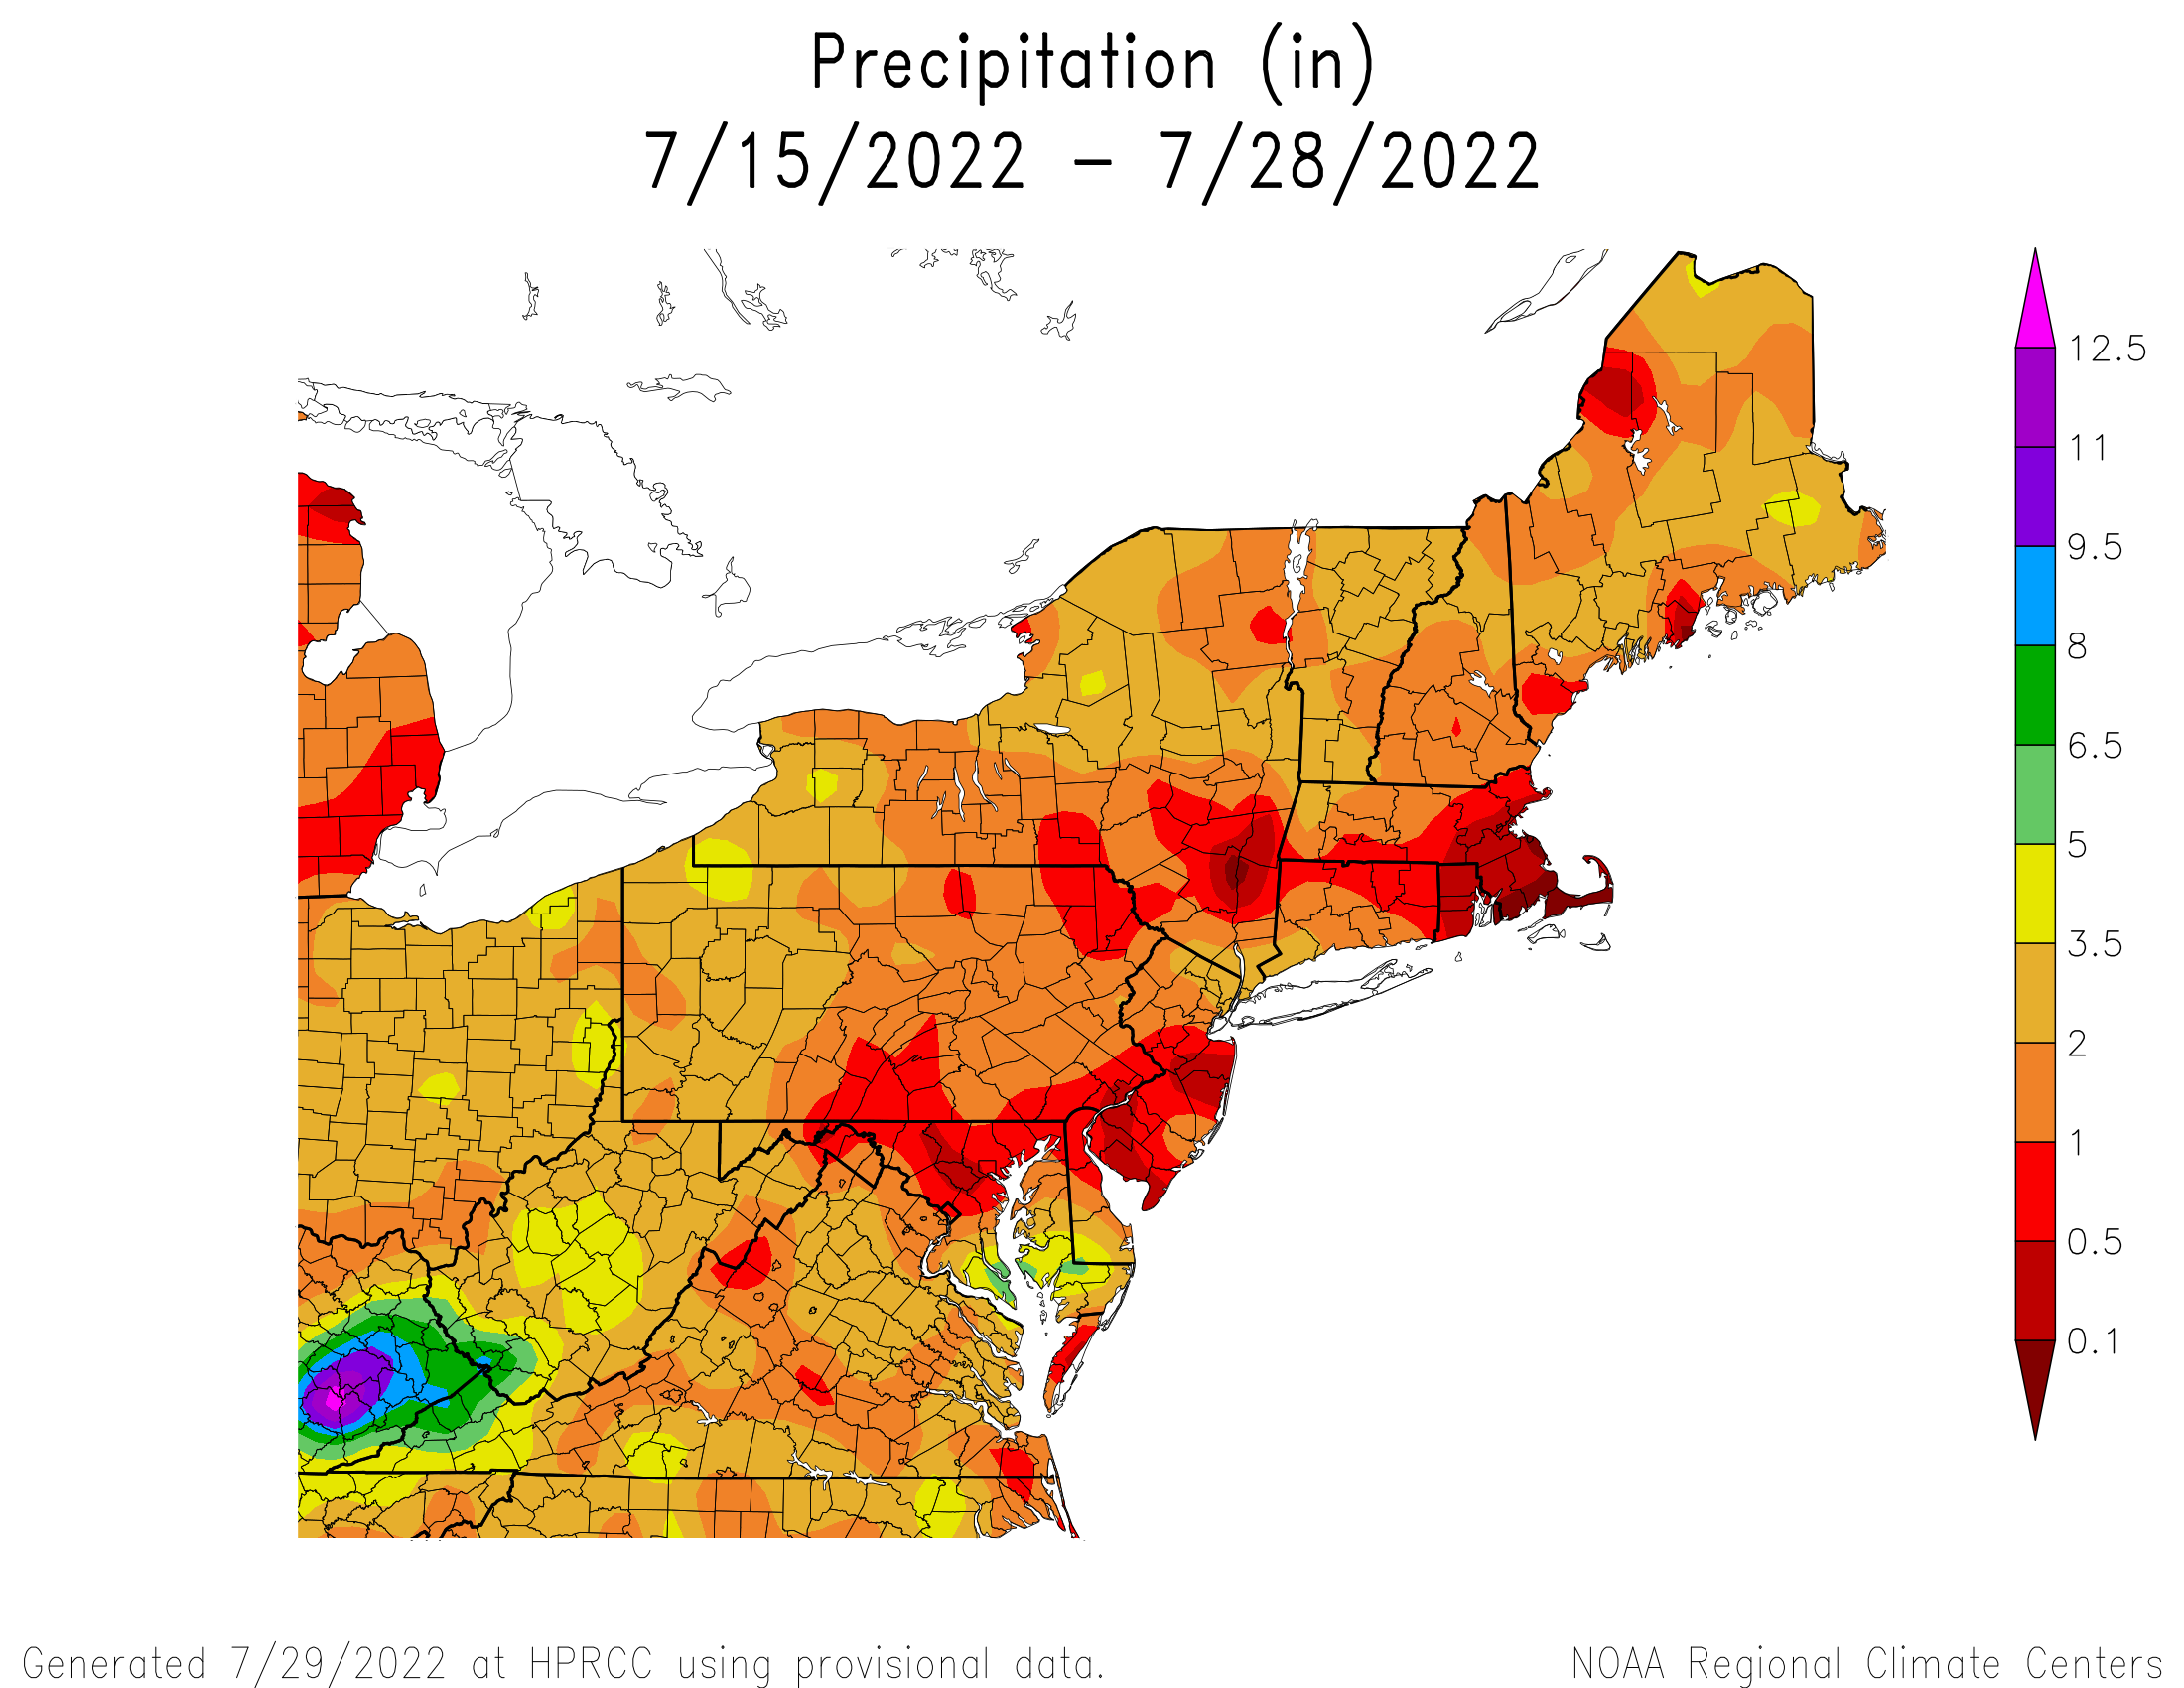 14-Day Total Precipitation